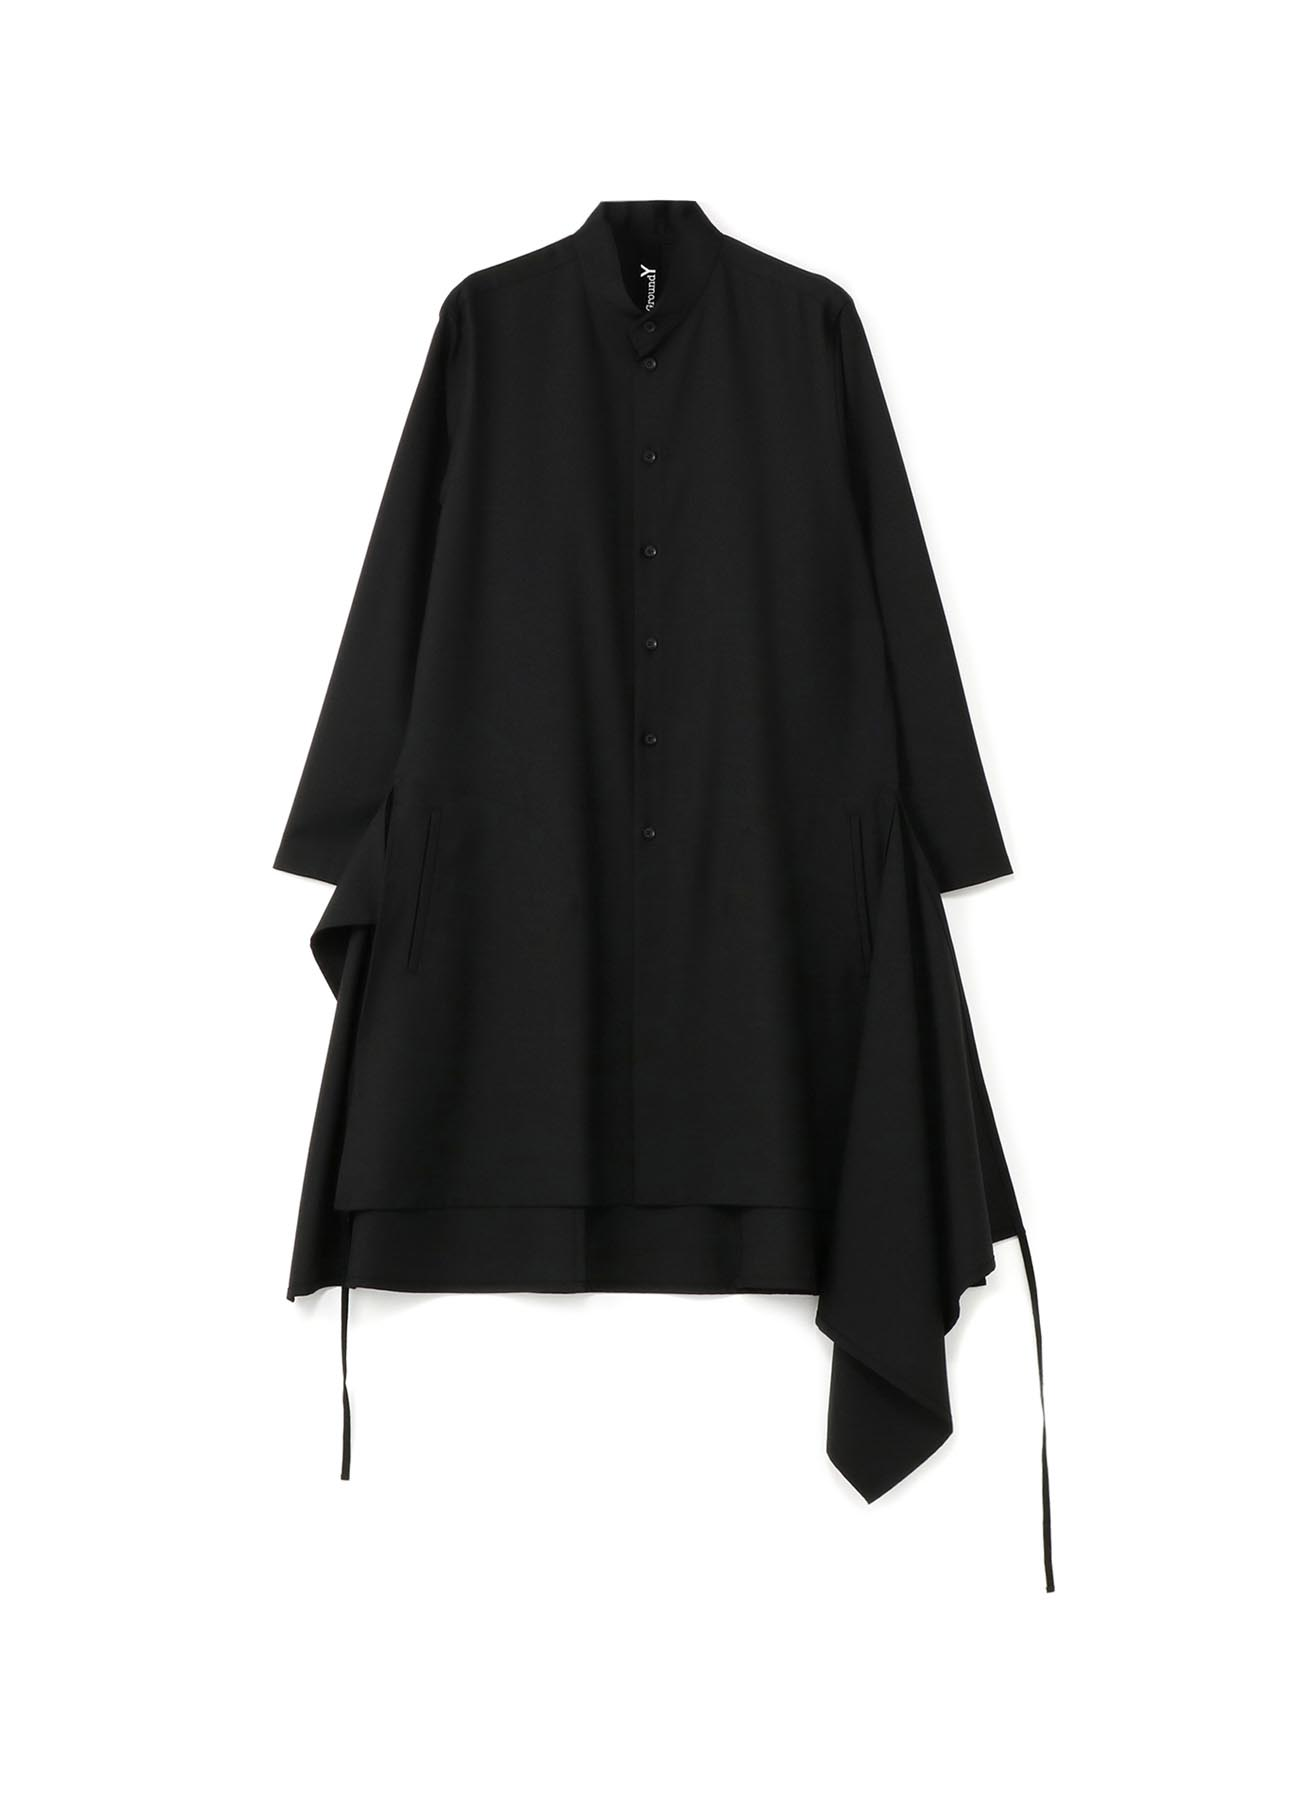 T/W Gabardine Big Sack-cloth Shirt